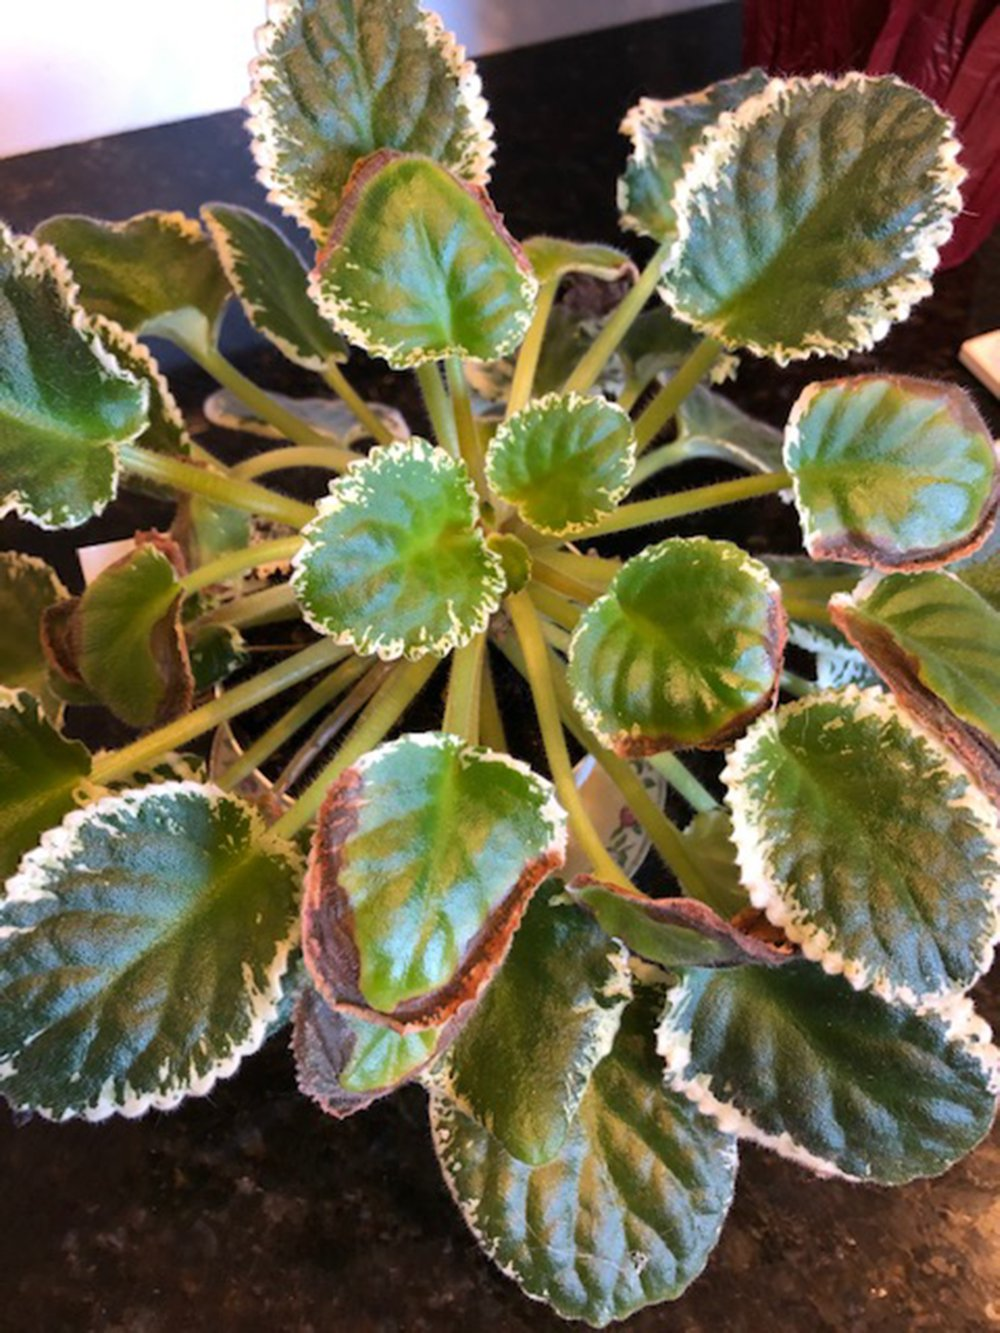 Brown edges on the foliage of this African violet worry its owner. (Special to the Democrat-Gazette)